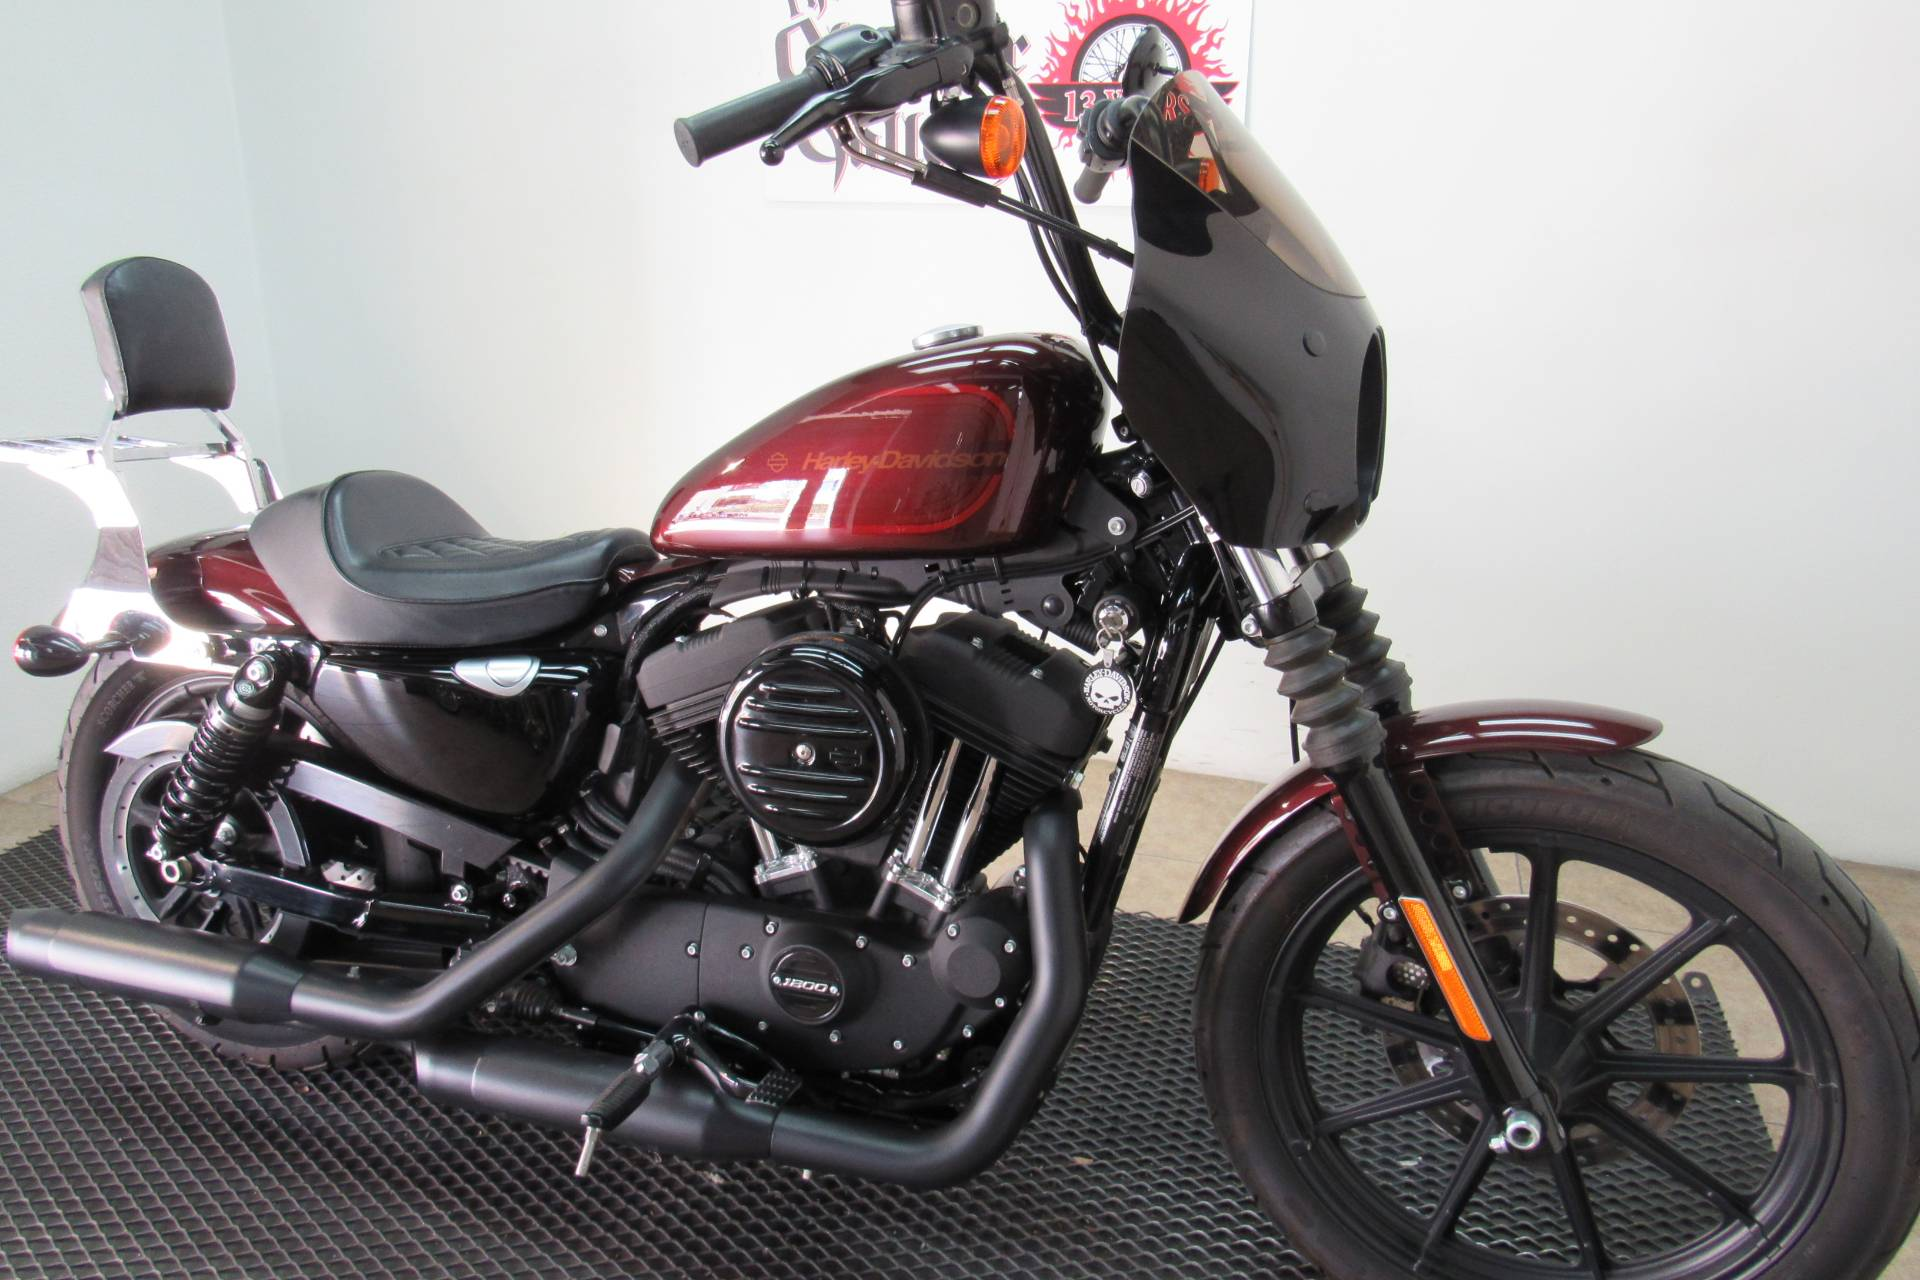 2019 Harley-Davidson IRON 1200 in Temecula, California - Photo 3